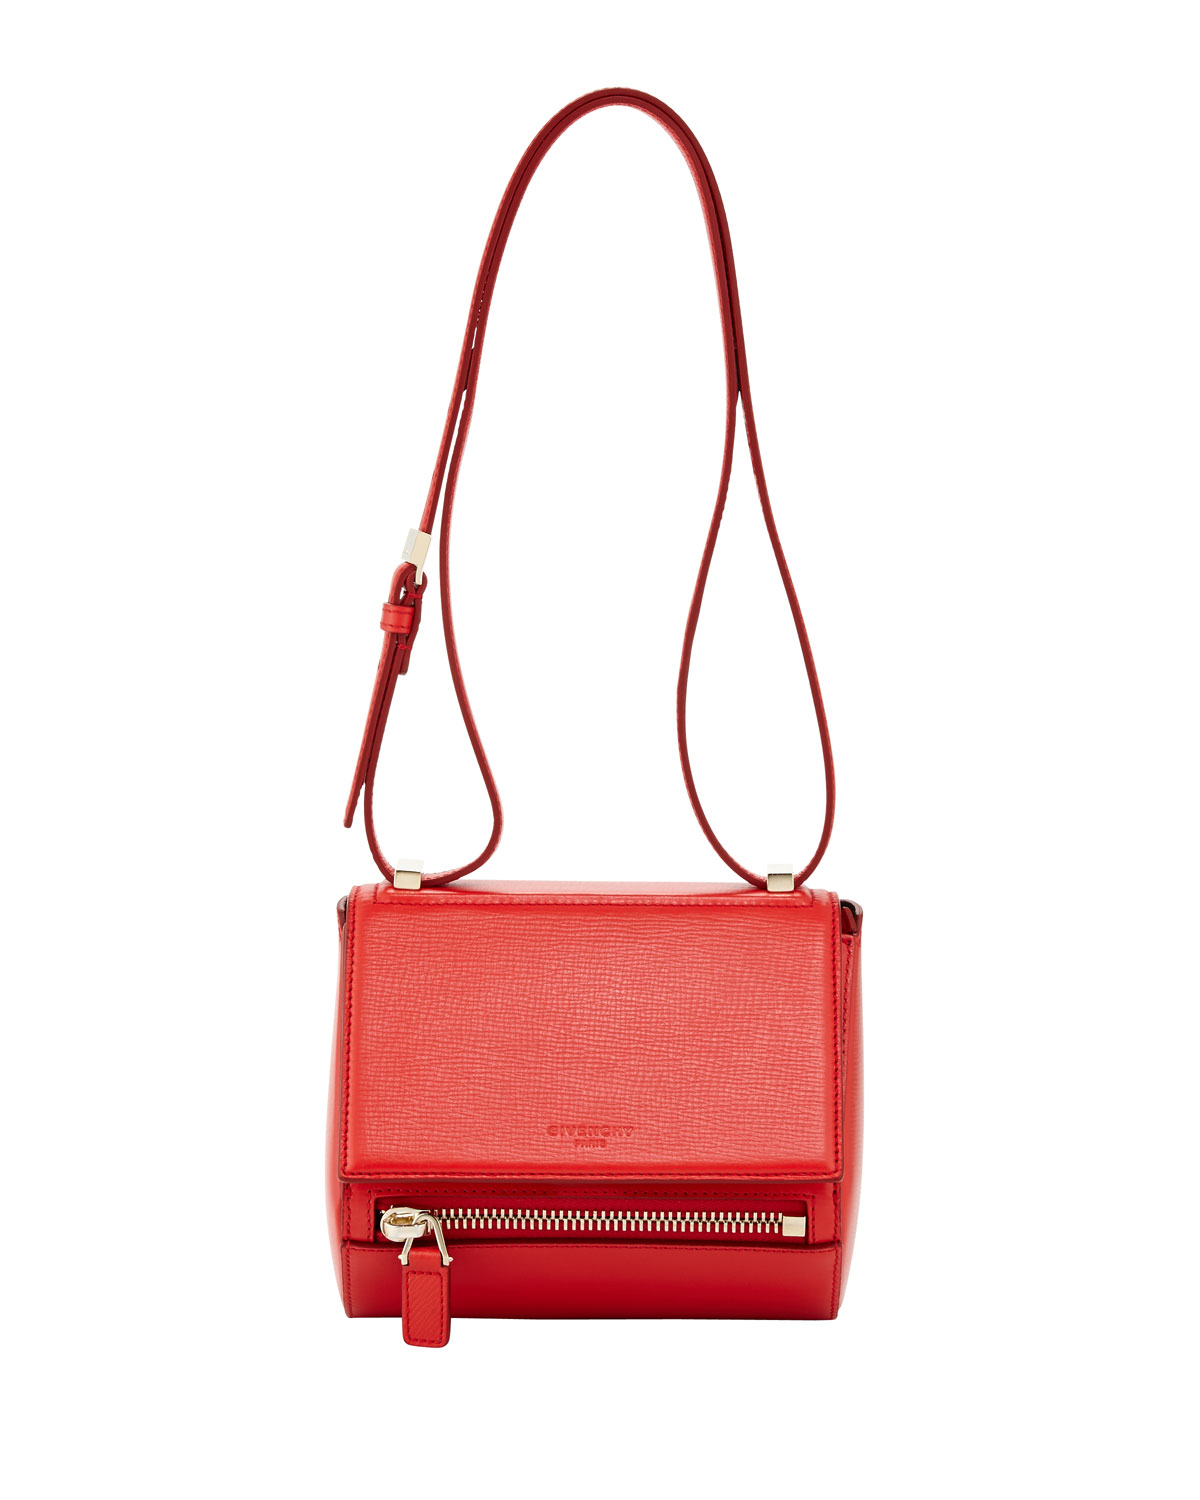 http://www.bergdorfgoodman.com/Givenchy-Pandora-Mini-Box-Crossbody-Bag-Red-Color-Story-Red/prod96350022_cat412910_cat413700_/p.prod?ecid=BGALRHy3bqNL2jtQ